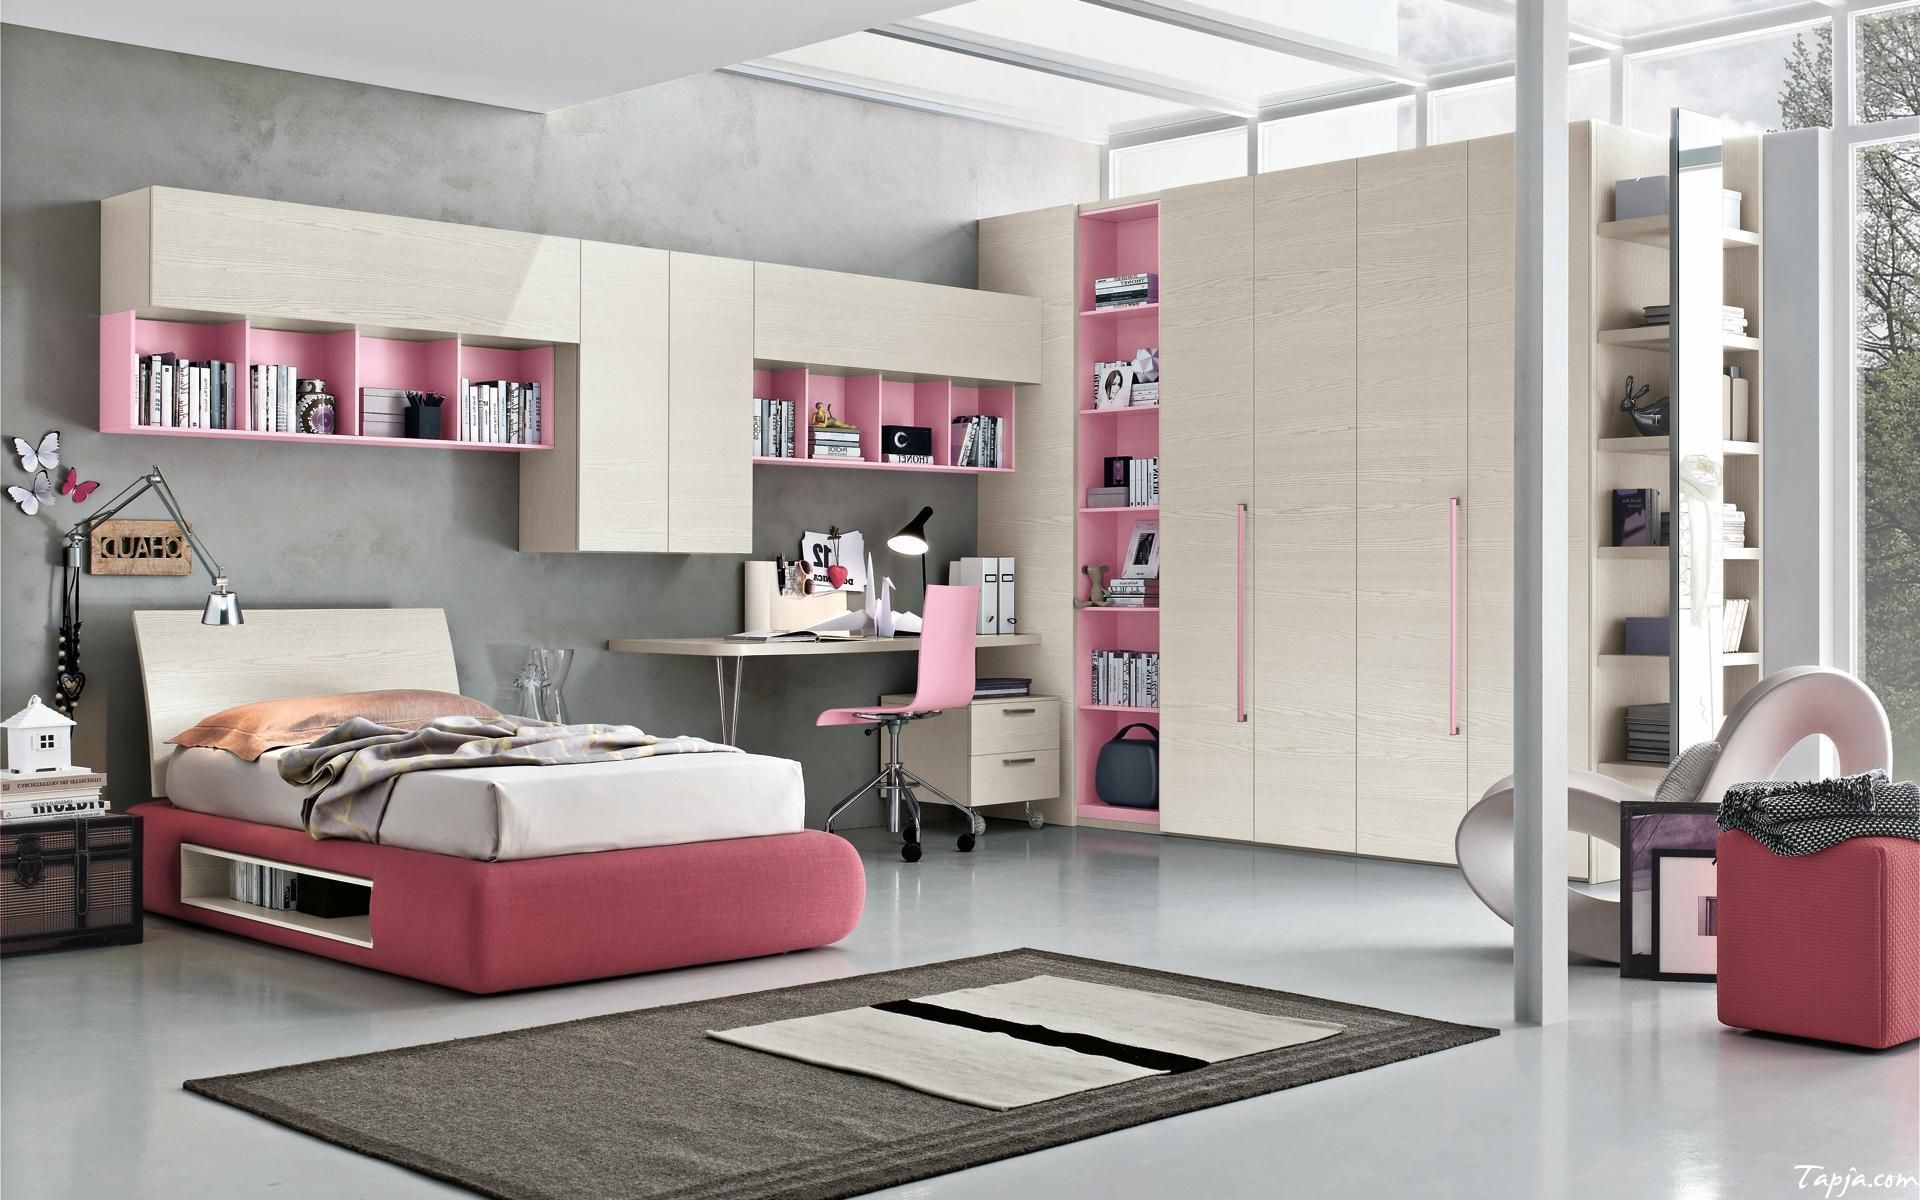 Image result for girls bedroom wardrobe | KANNAN PORUR ...